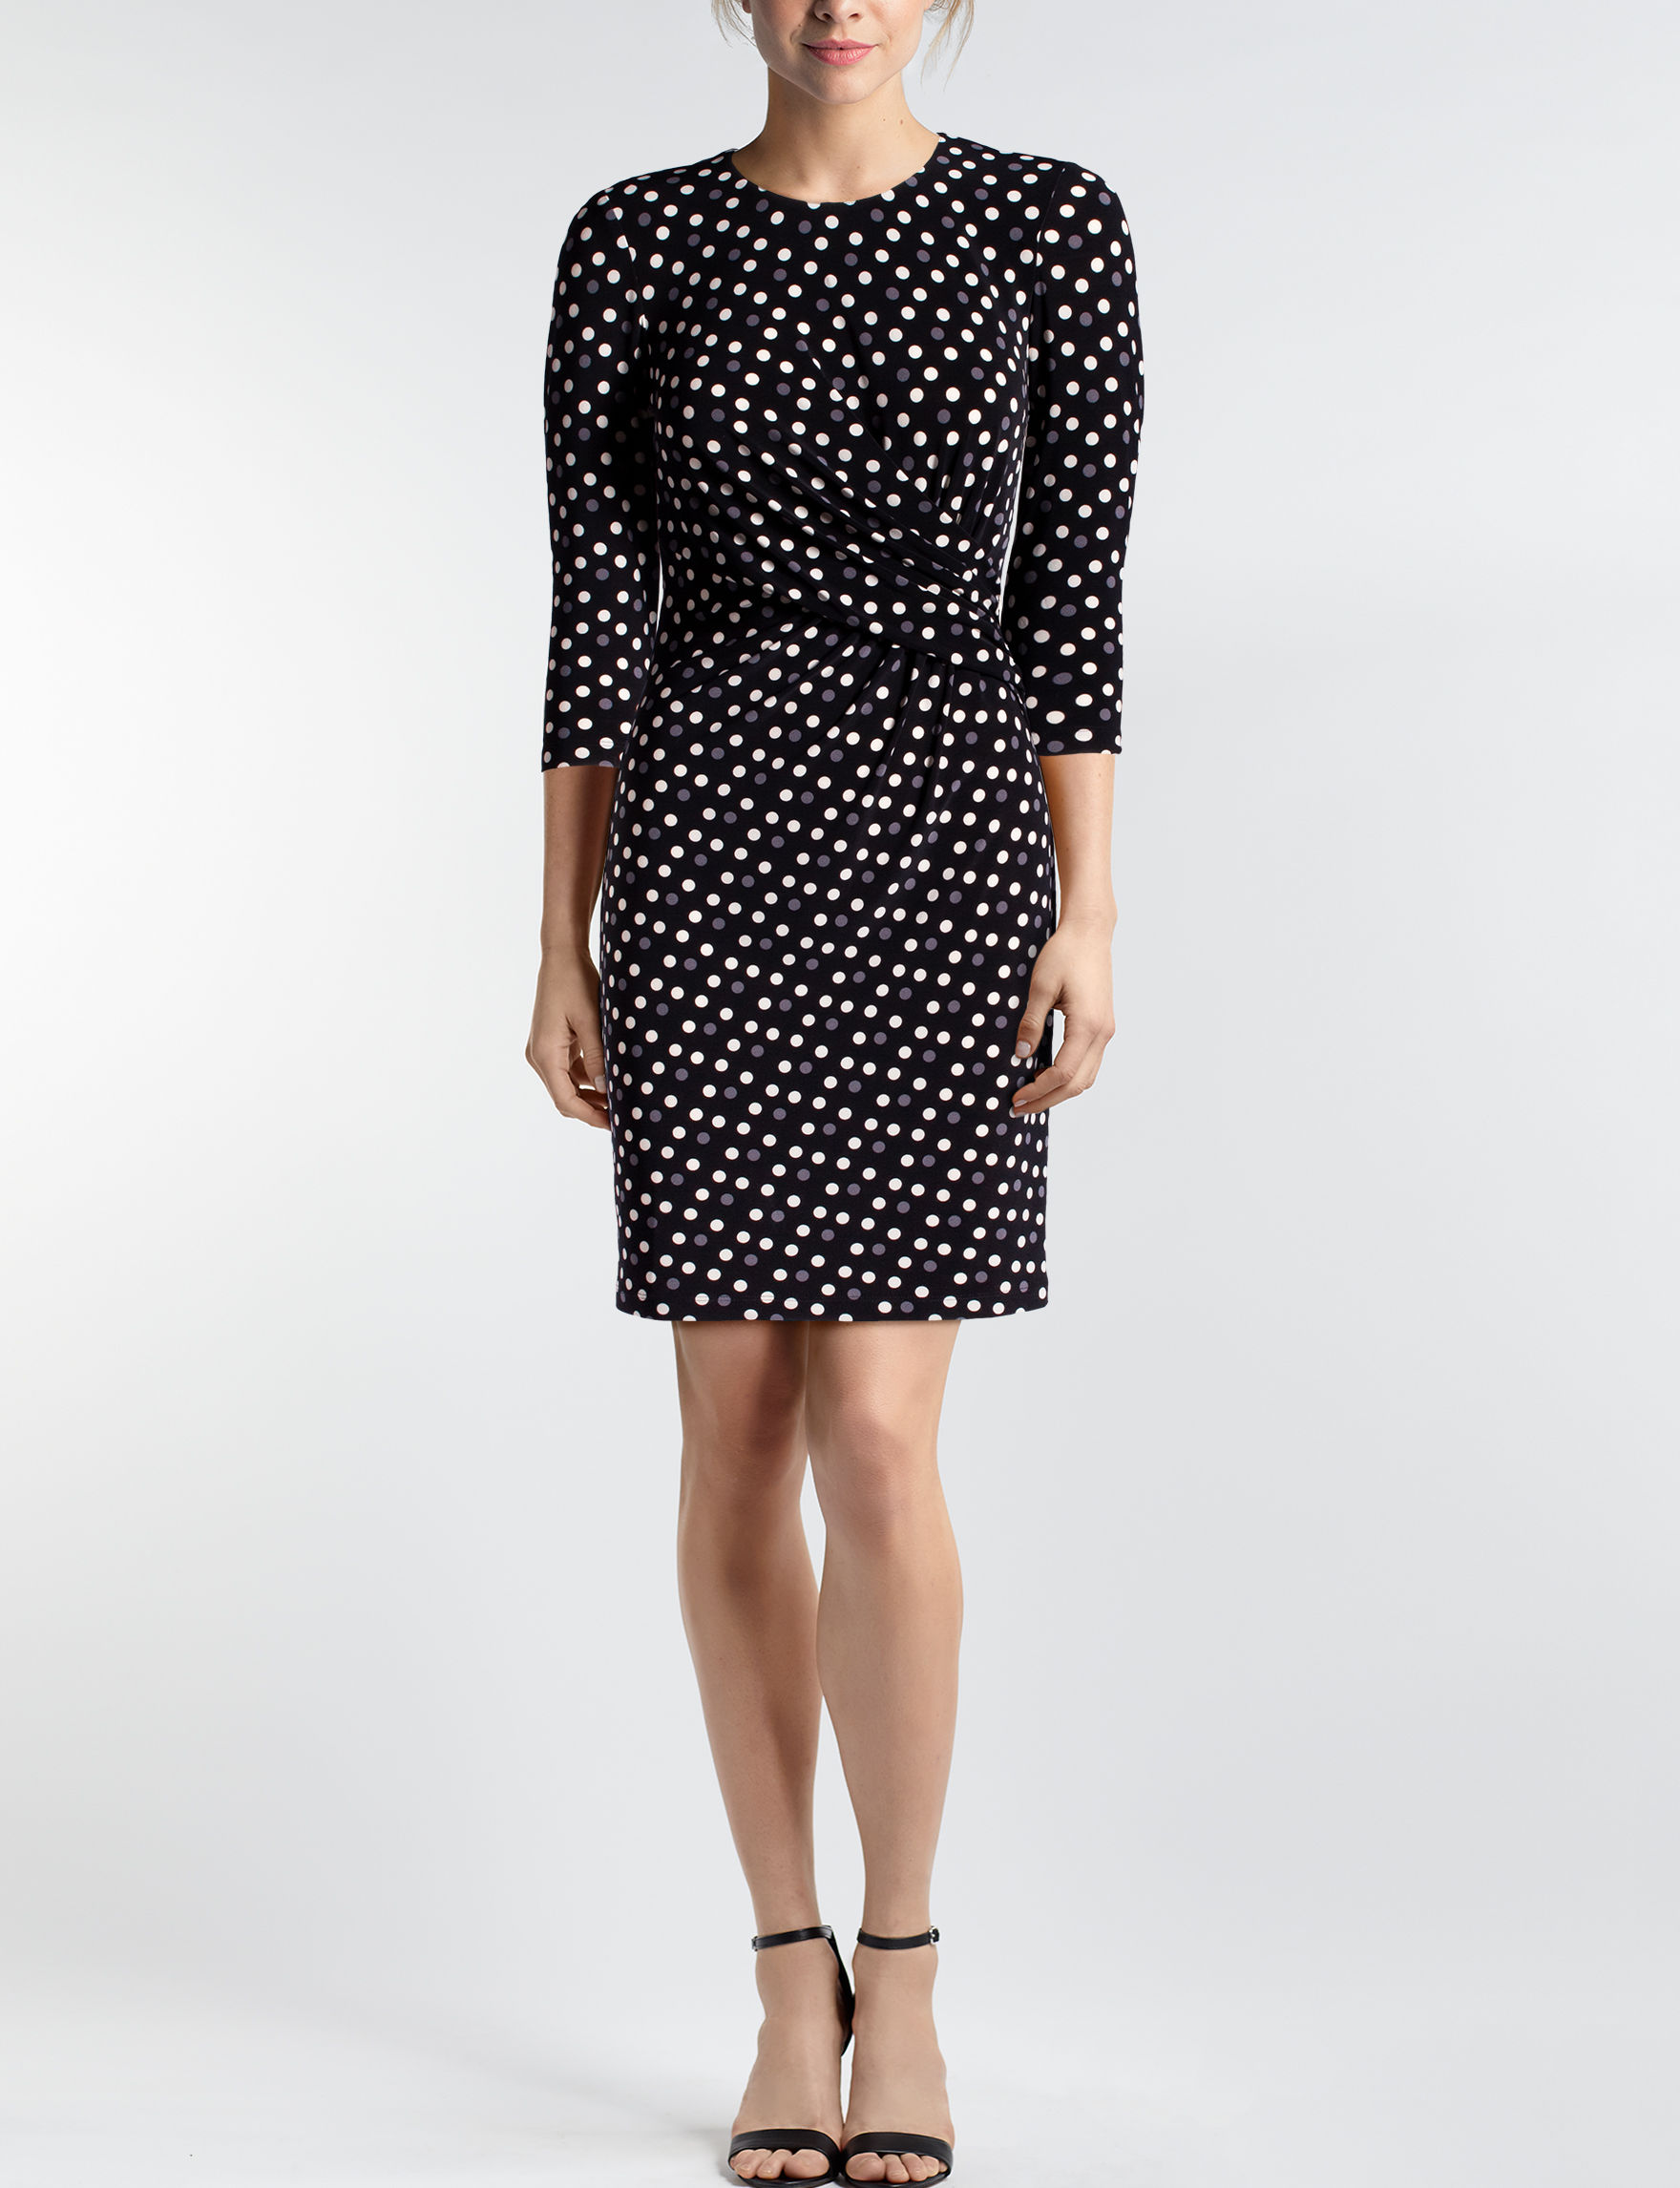 Anne Klein Black/Grey/White Everyday & Casual Shift Dresses